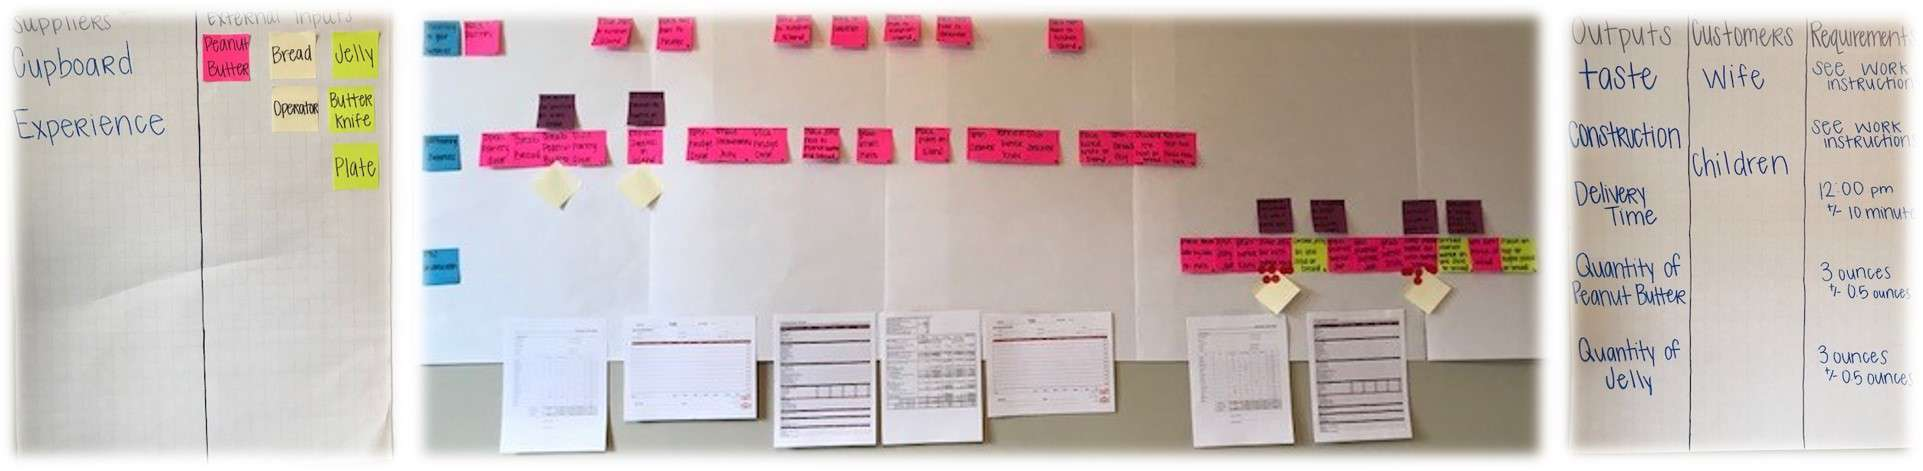 learn the 7 steps to creating a detailed process map in record time